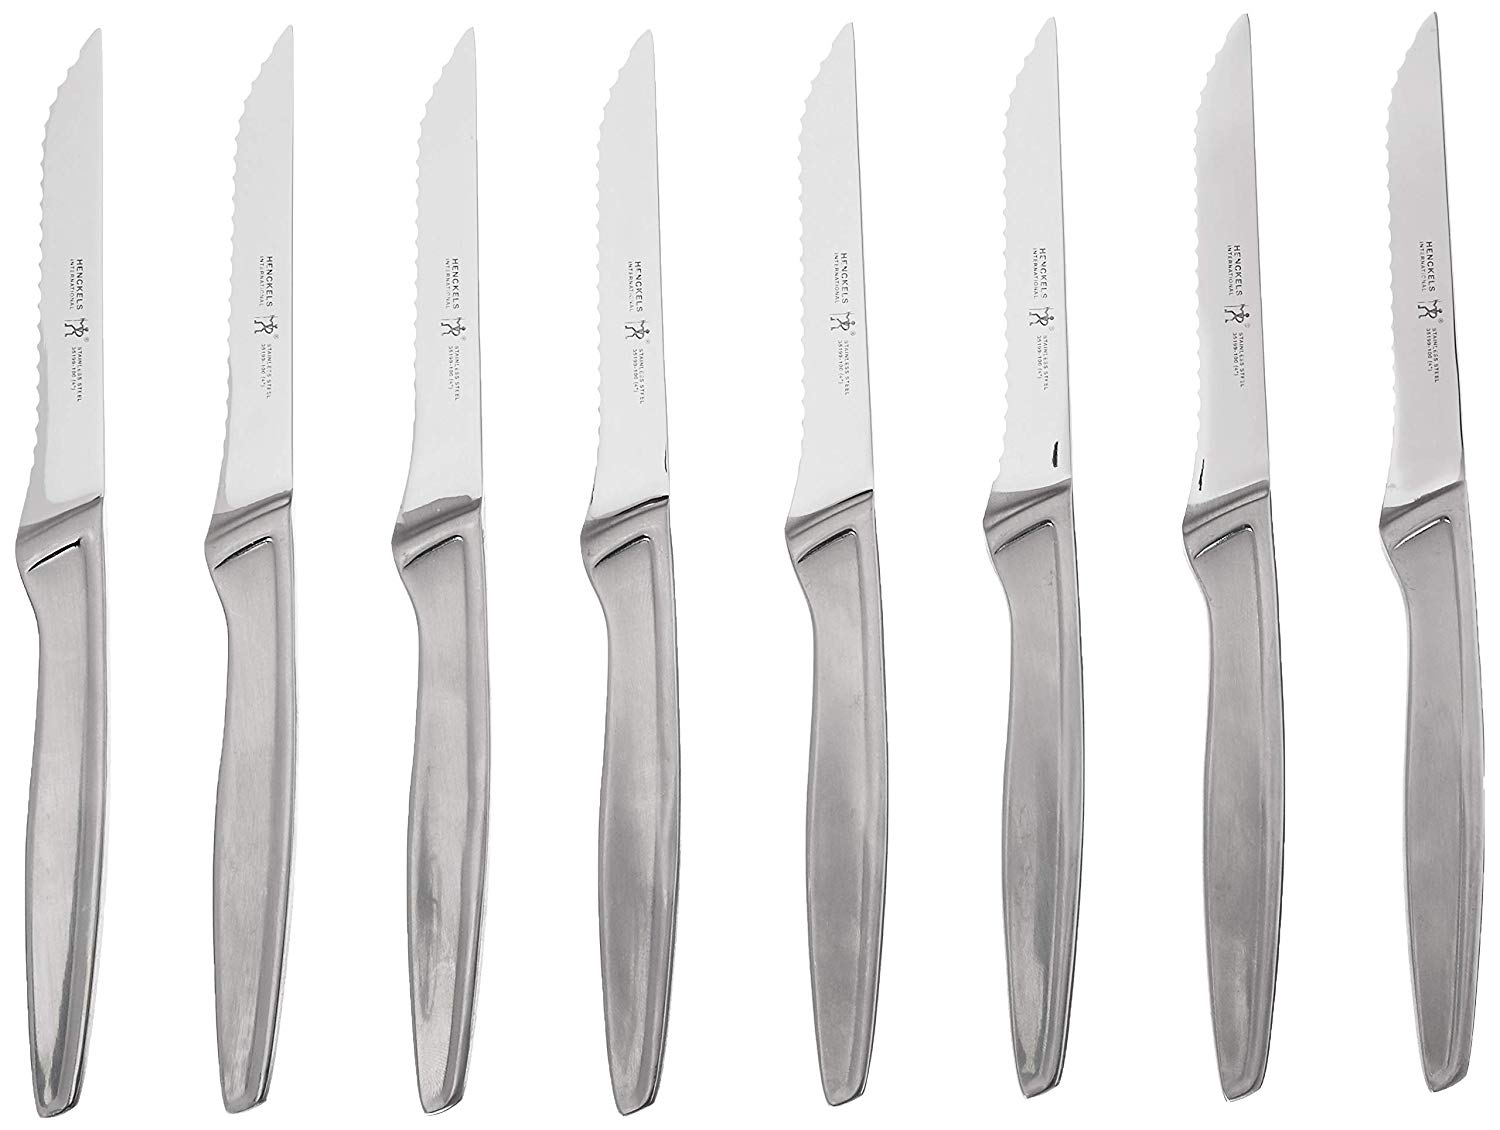 J.a. henckels international knife set